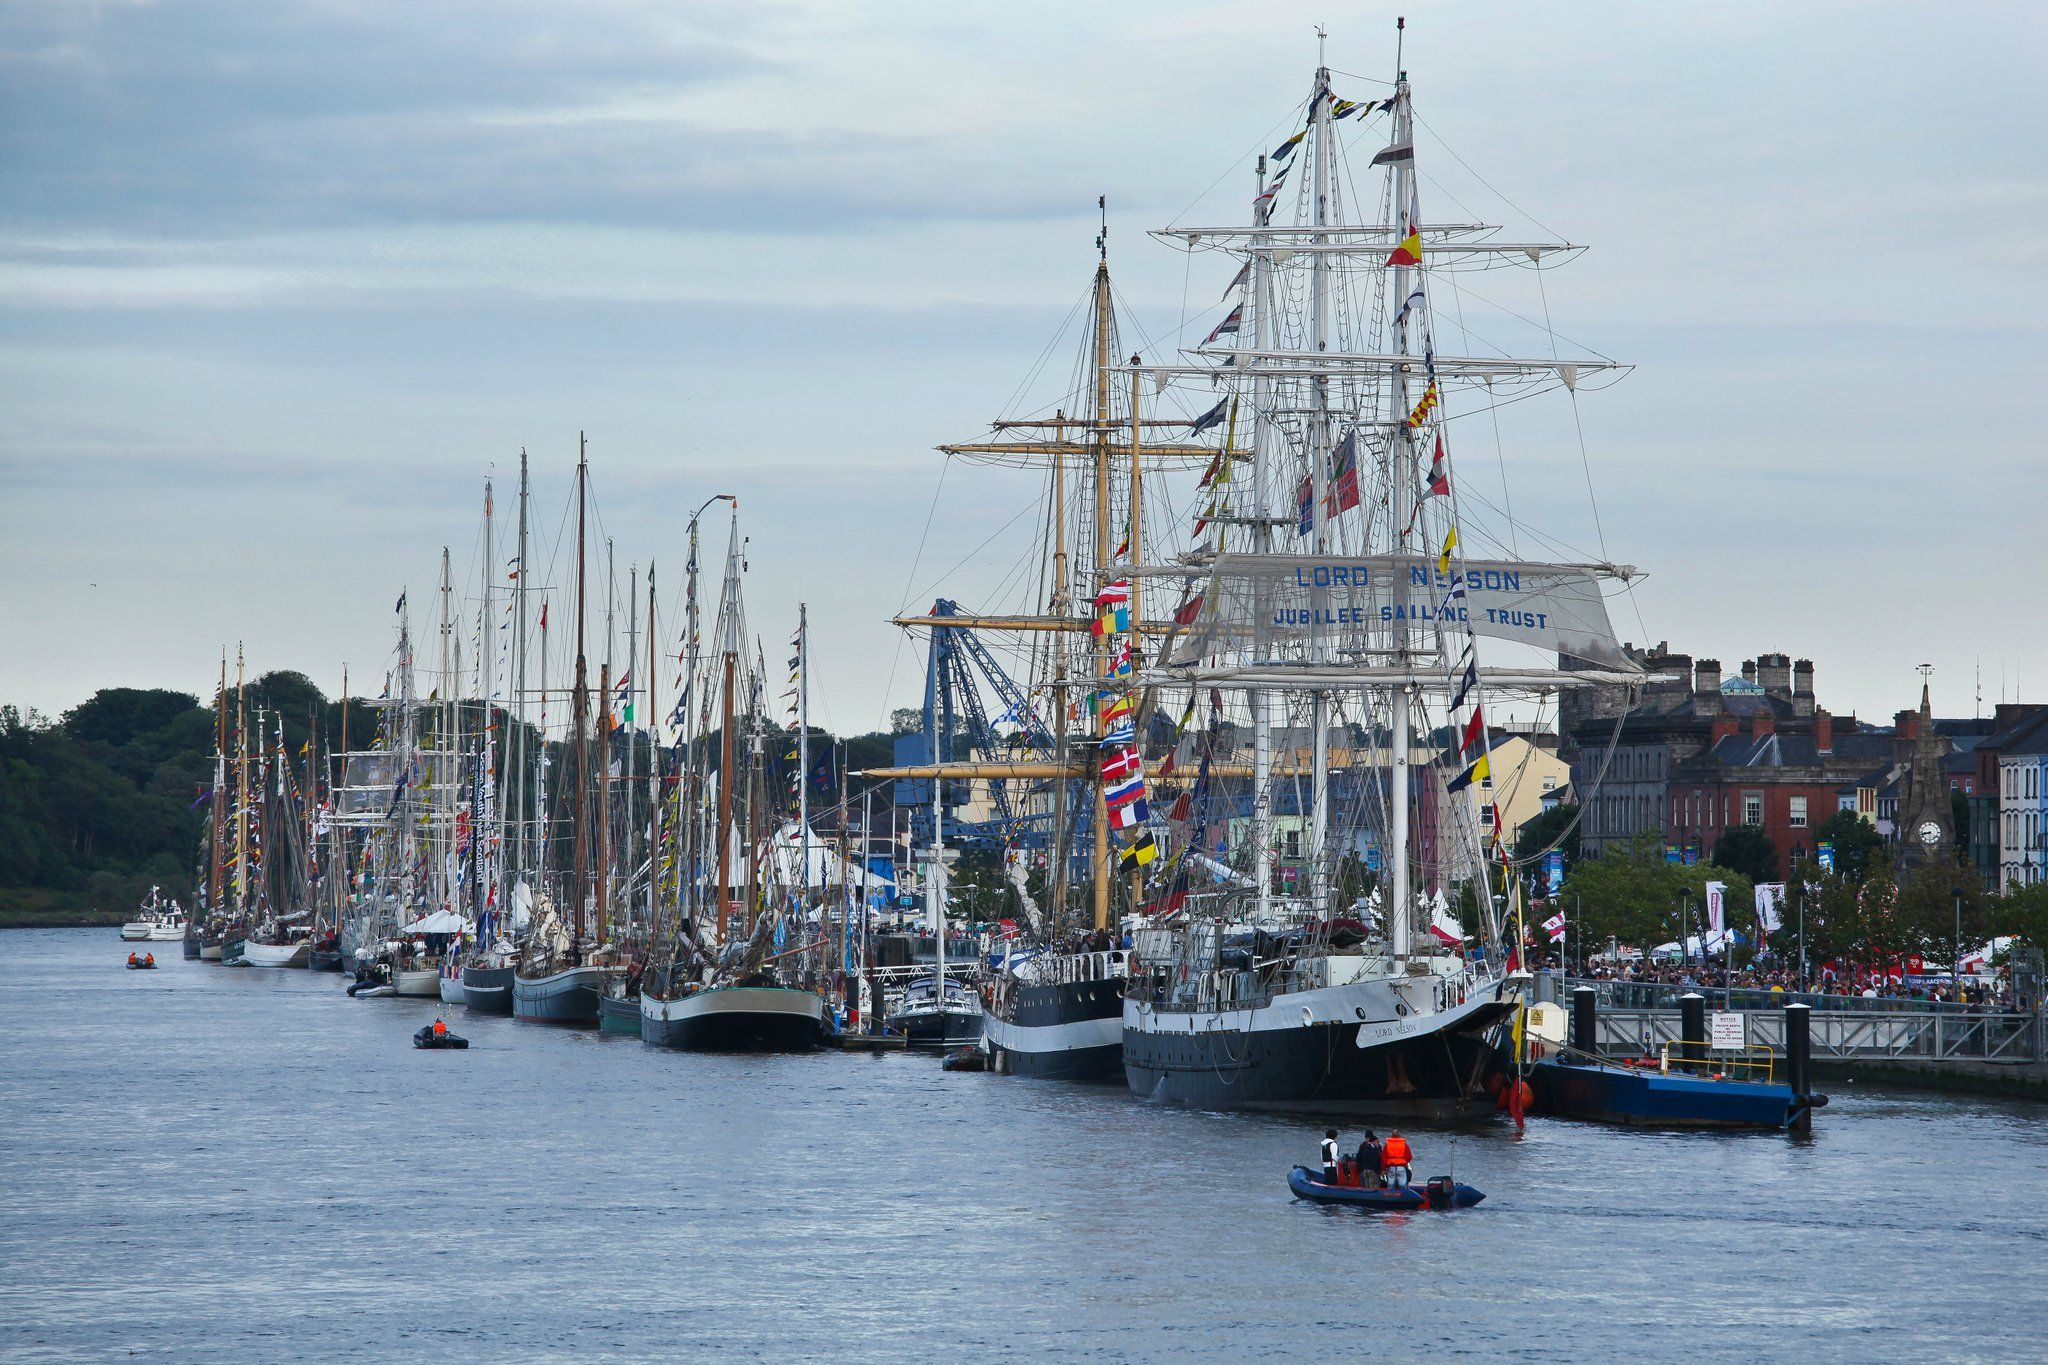 Waterford Image Tall Ships